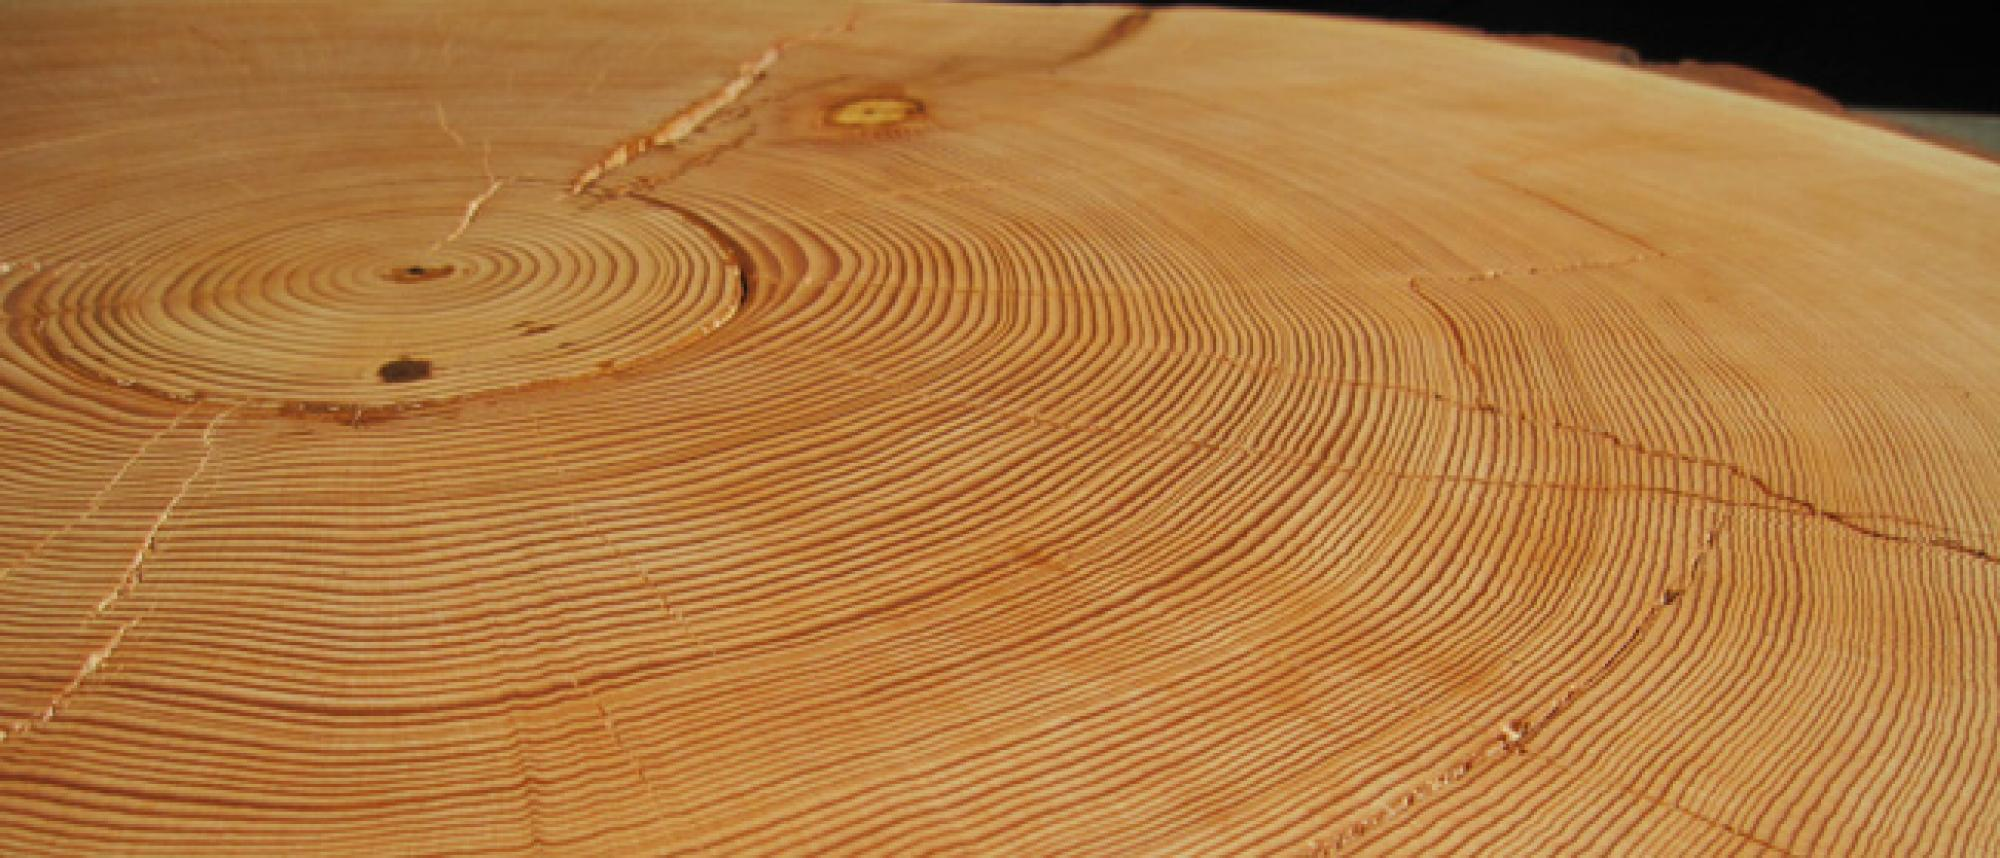 Annual tree rings record a detailed history of drought  and wetness . This sample from a dead Douglas fir tree in the Santa Catalina Mountains near Tucson, Ariz., has nearly 400 rings and dates back to the year 1600. Stress cracks, visible in the foregrou